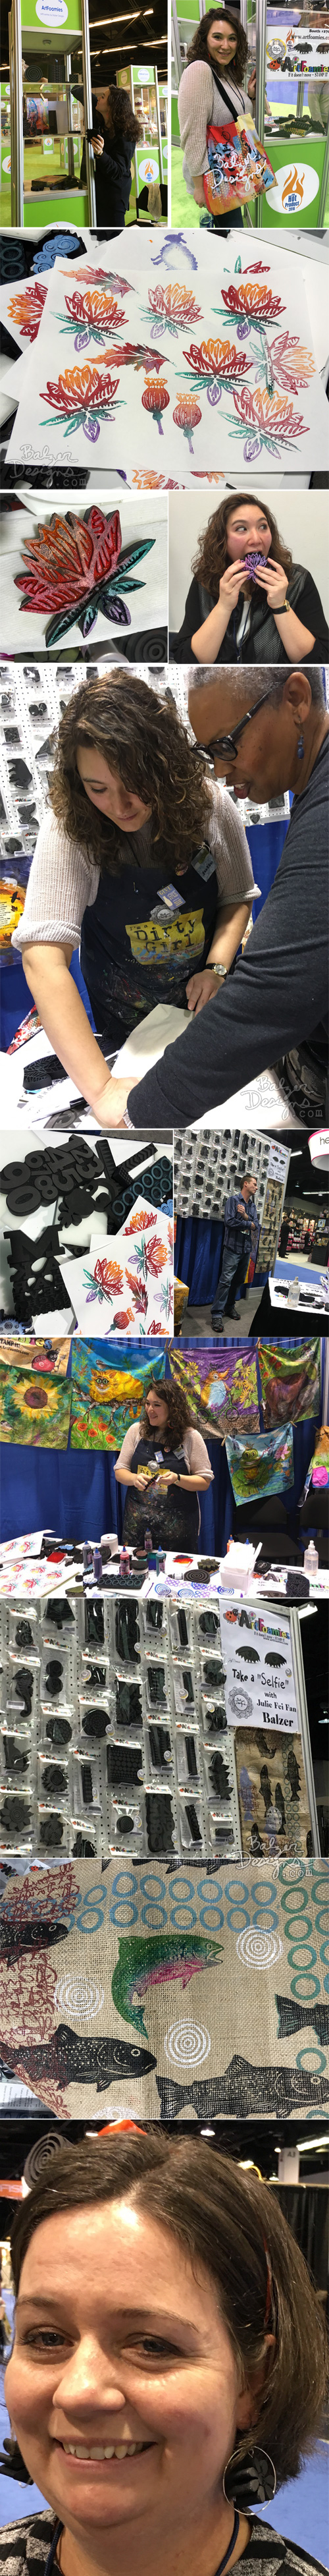 from the Balzer Designs Blog: Craft & Hobby Association Show: CHA 2016